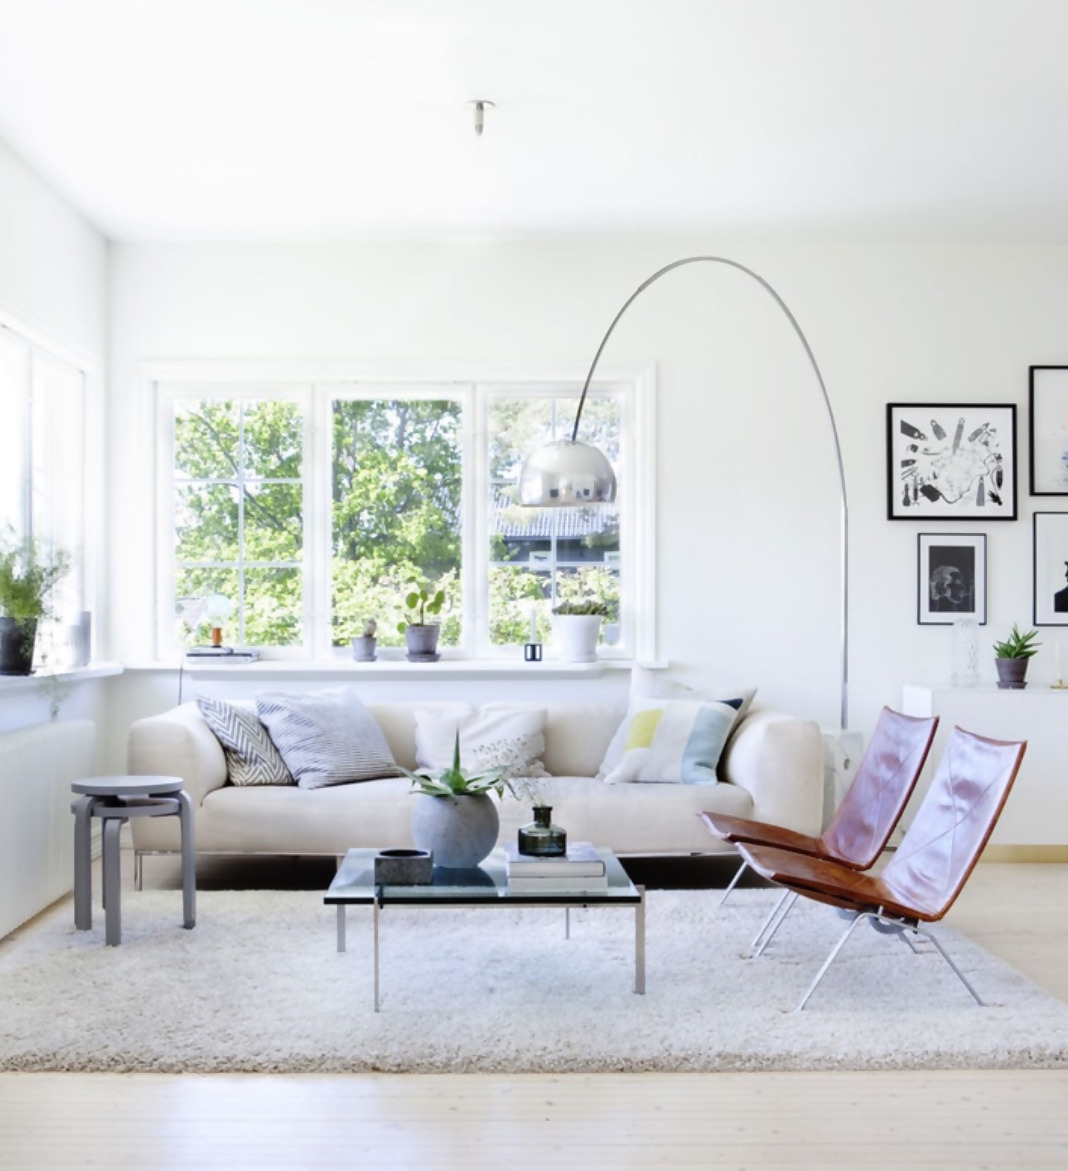 image001 Enhance any room with the Arco lamp